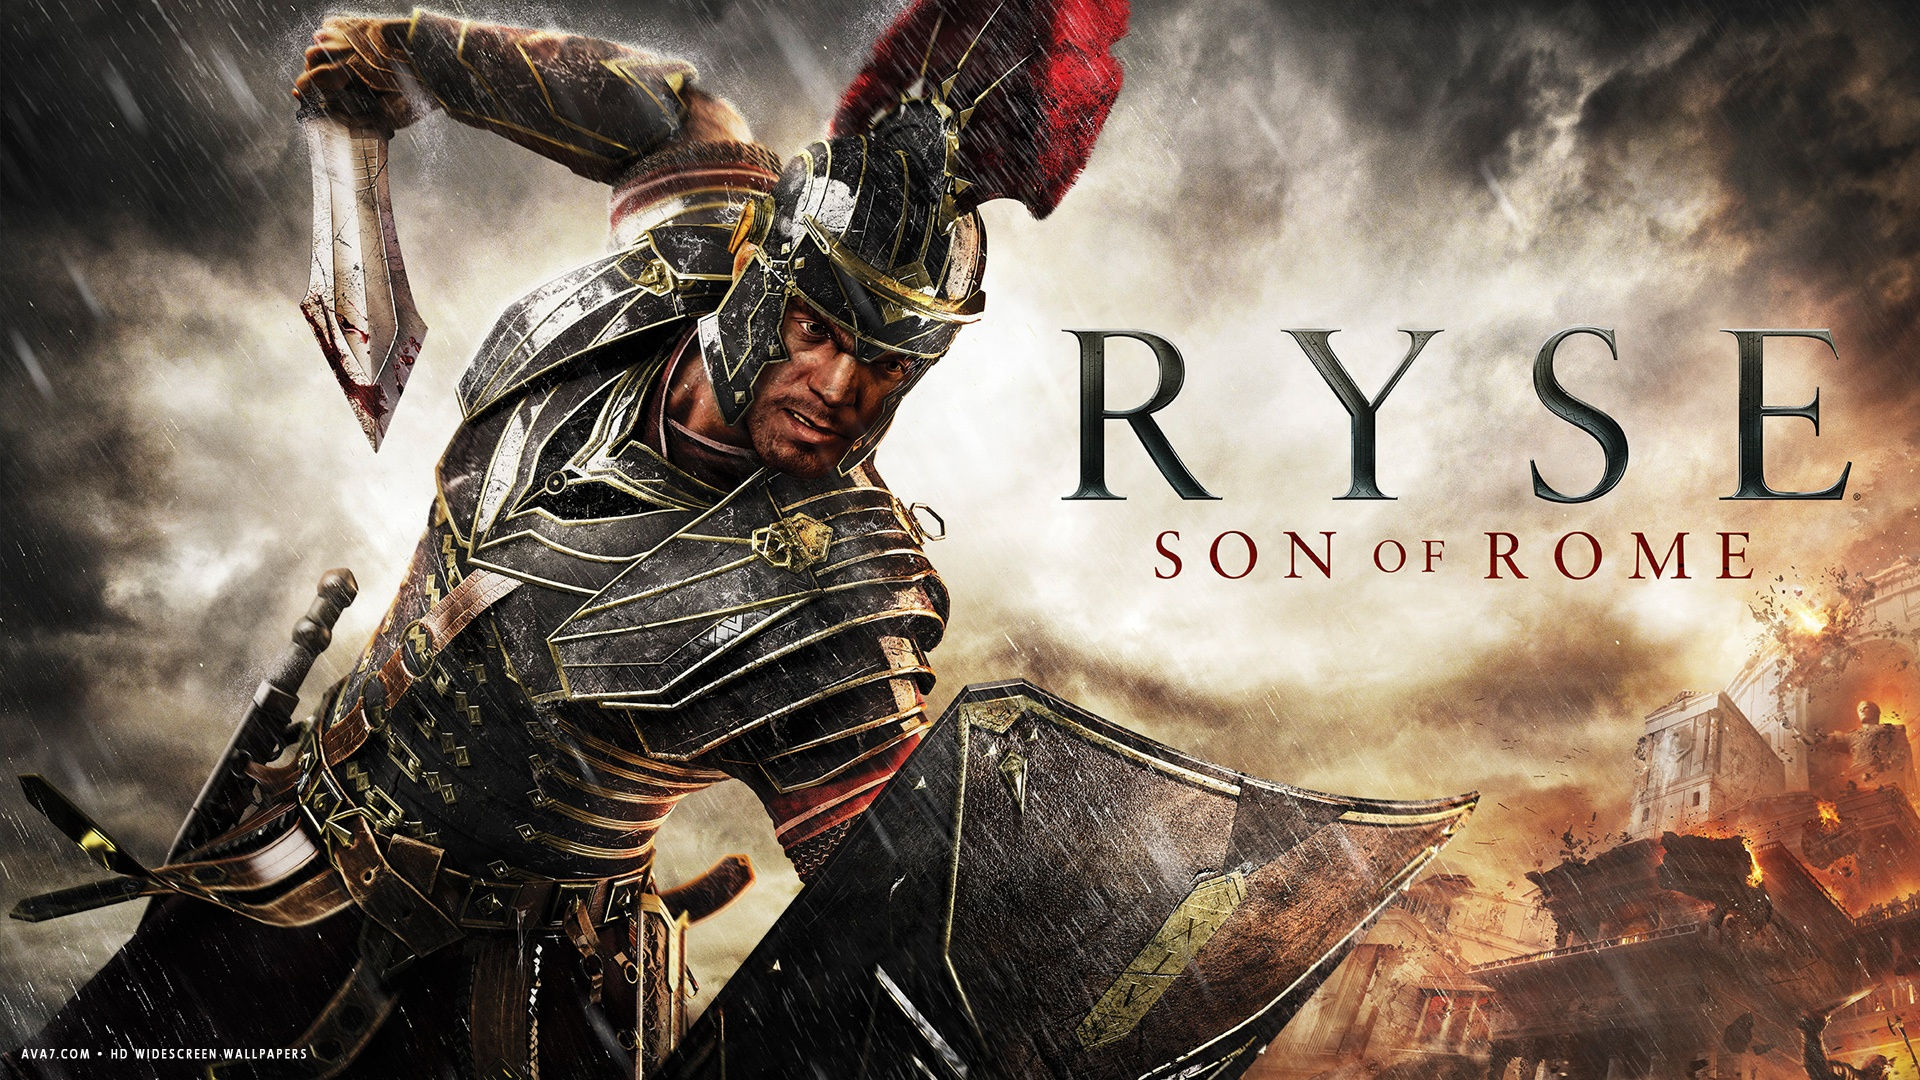 ryse son of rome game hd widescreen wallpaper